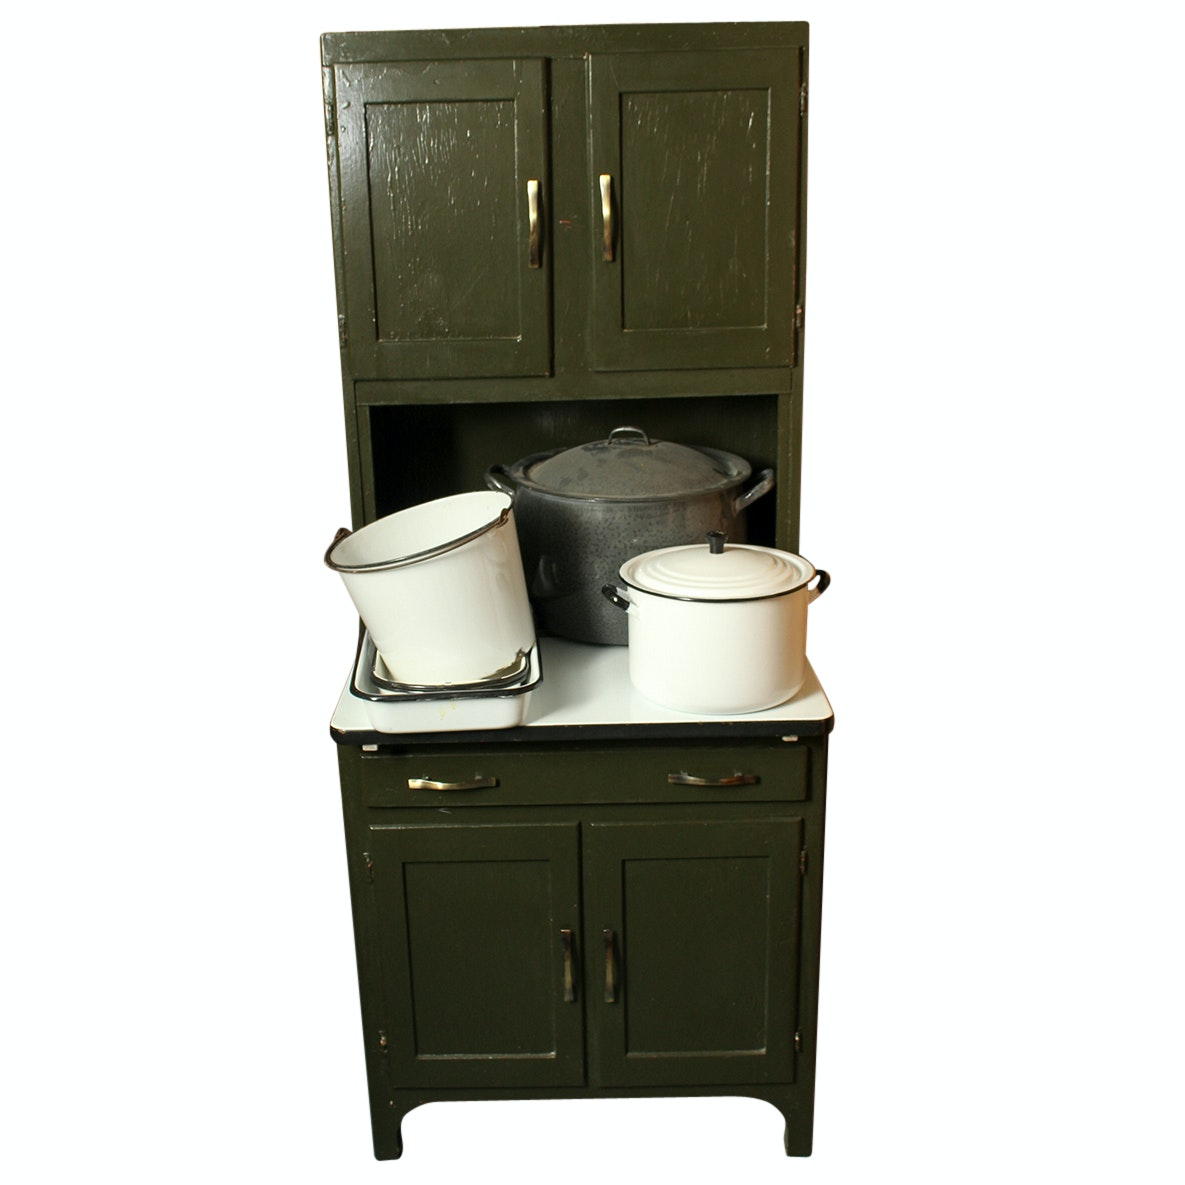 Vintage Kitchen Hutch and Enamel Cookware